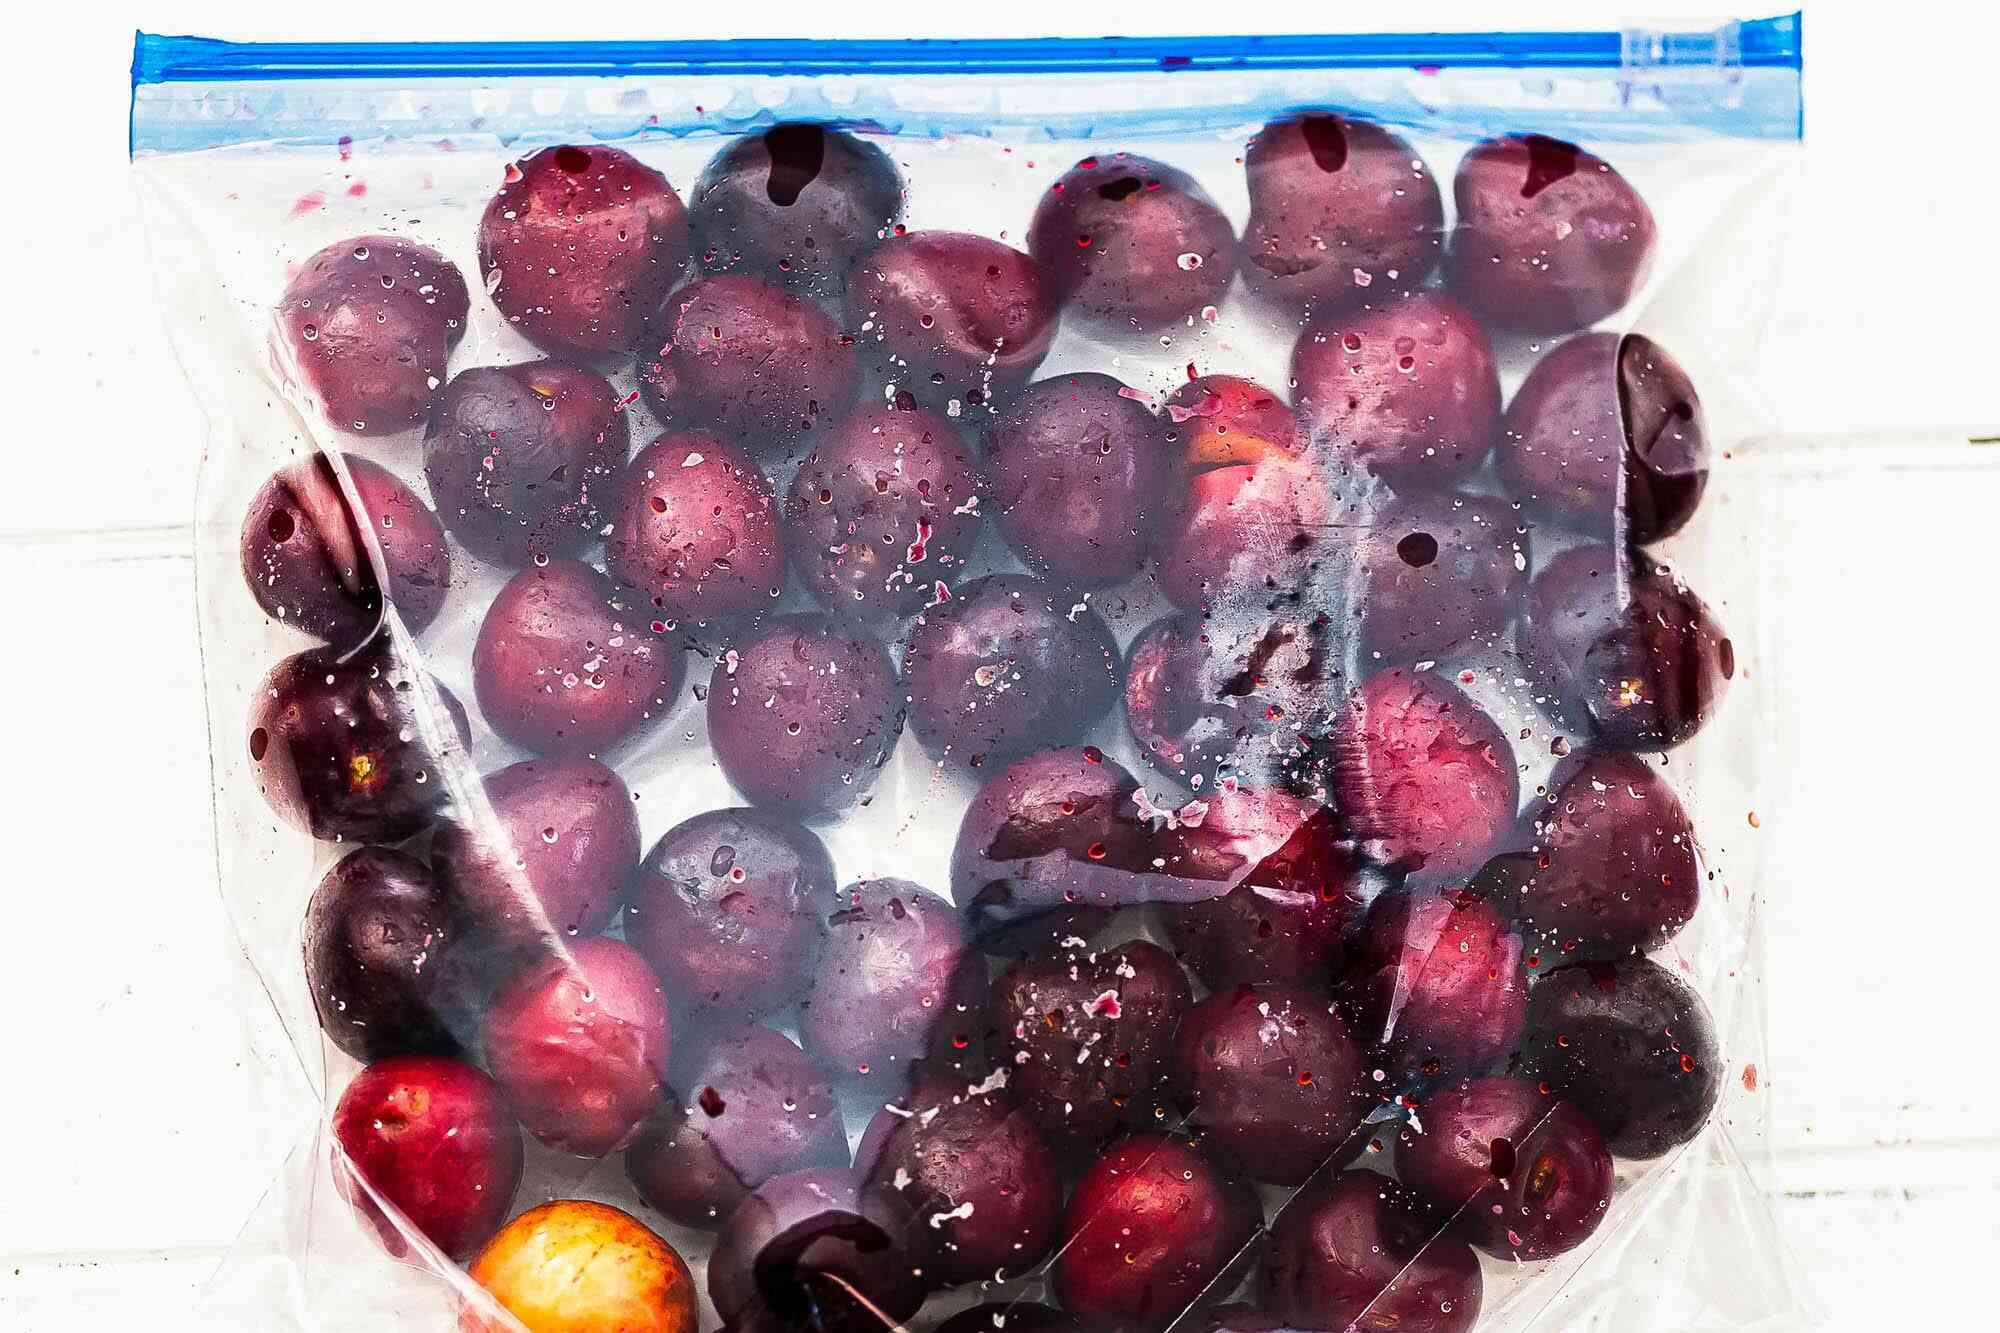 A ziplock bag of cherries for a guide to cherries.